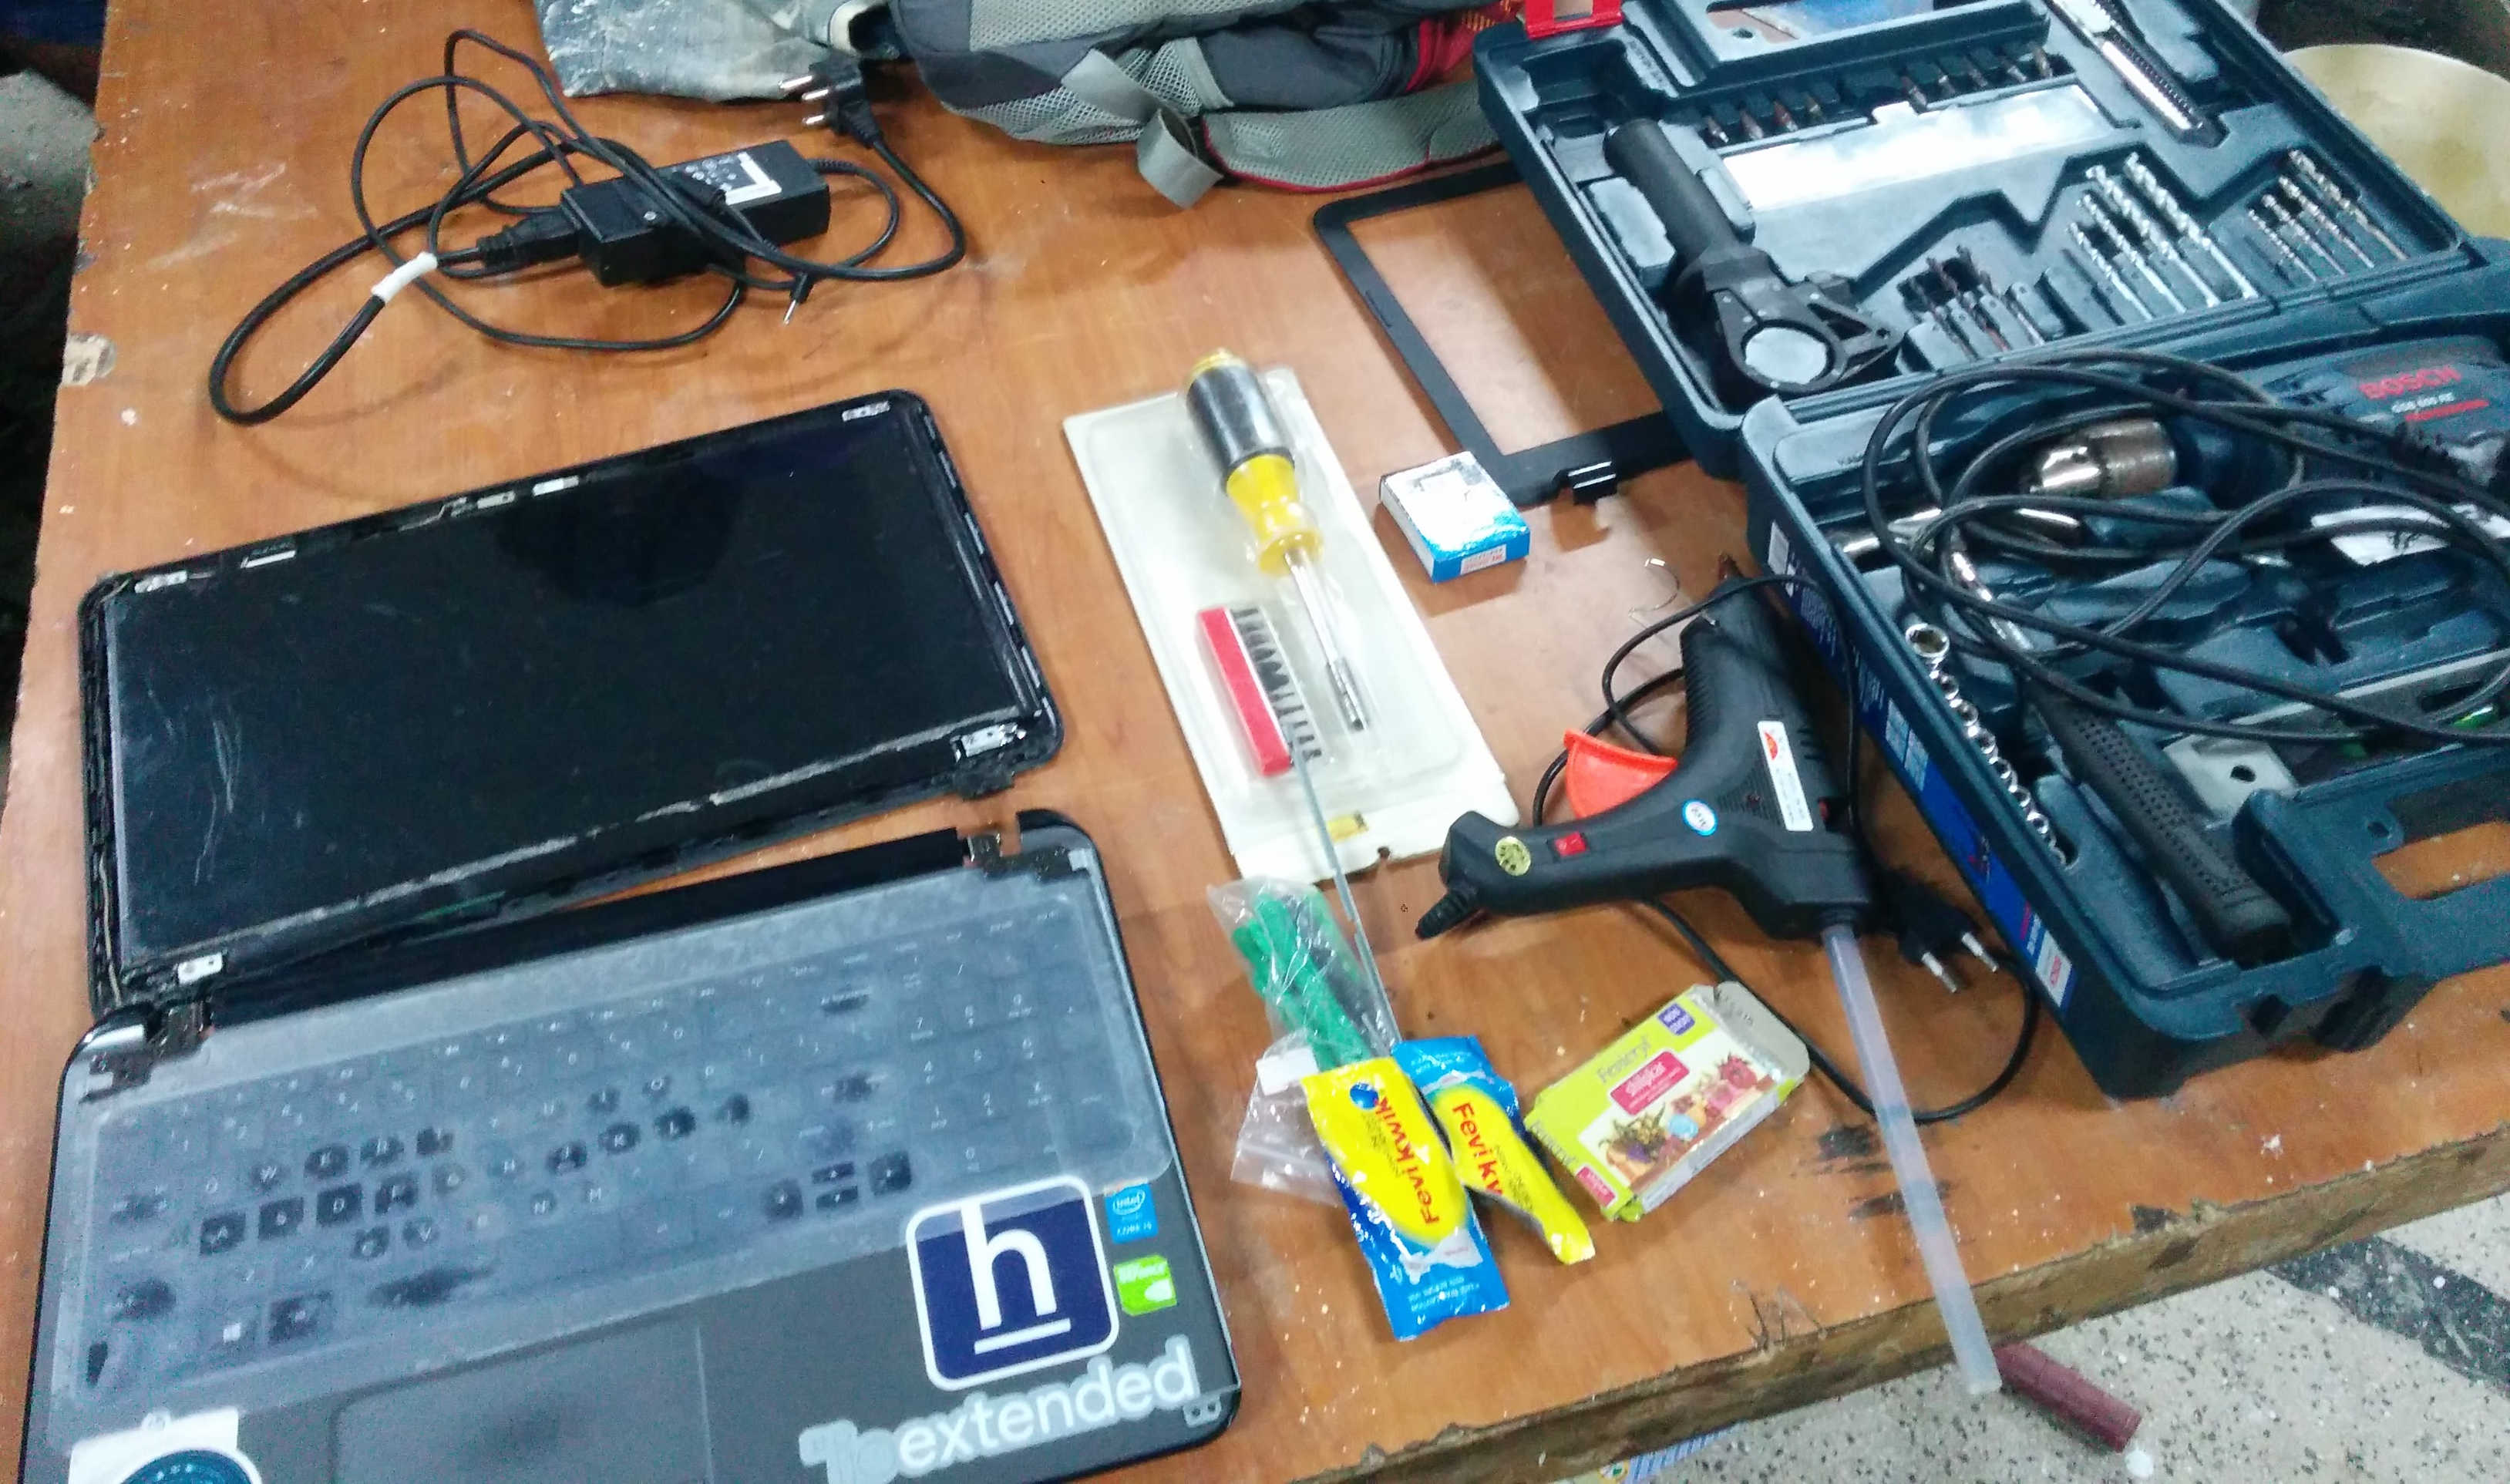 laptop-repair-tools